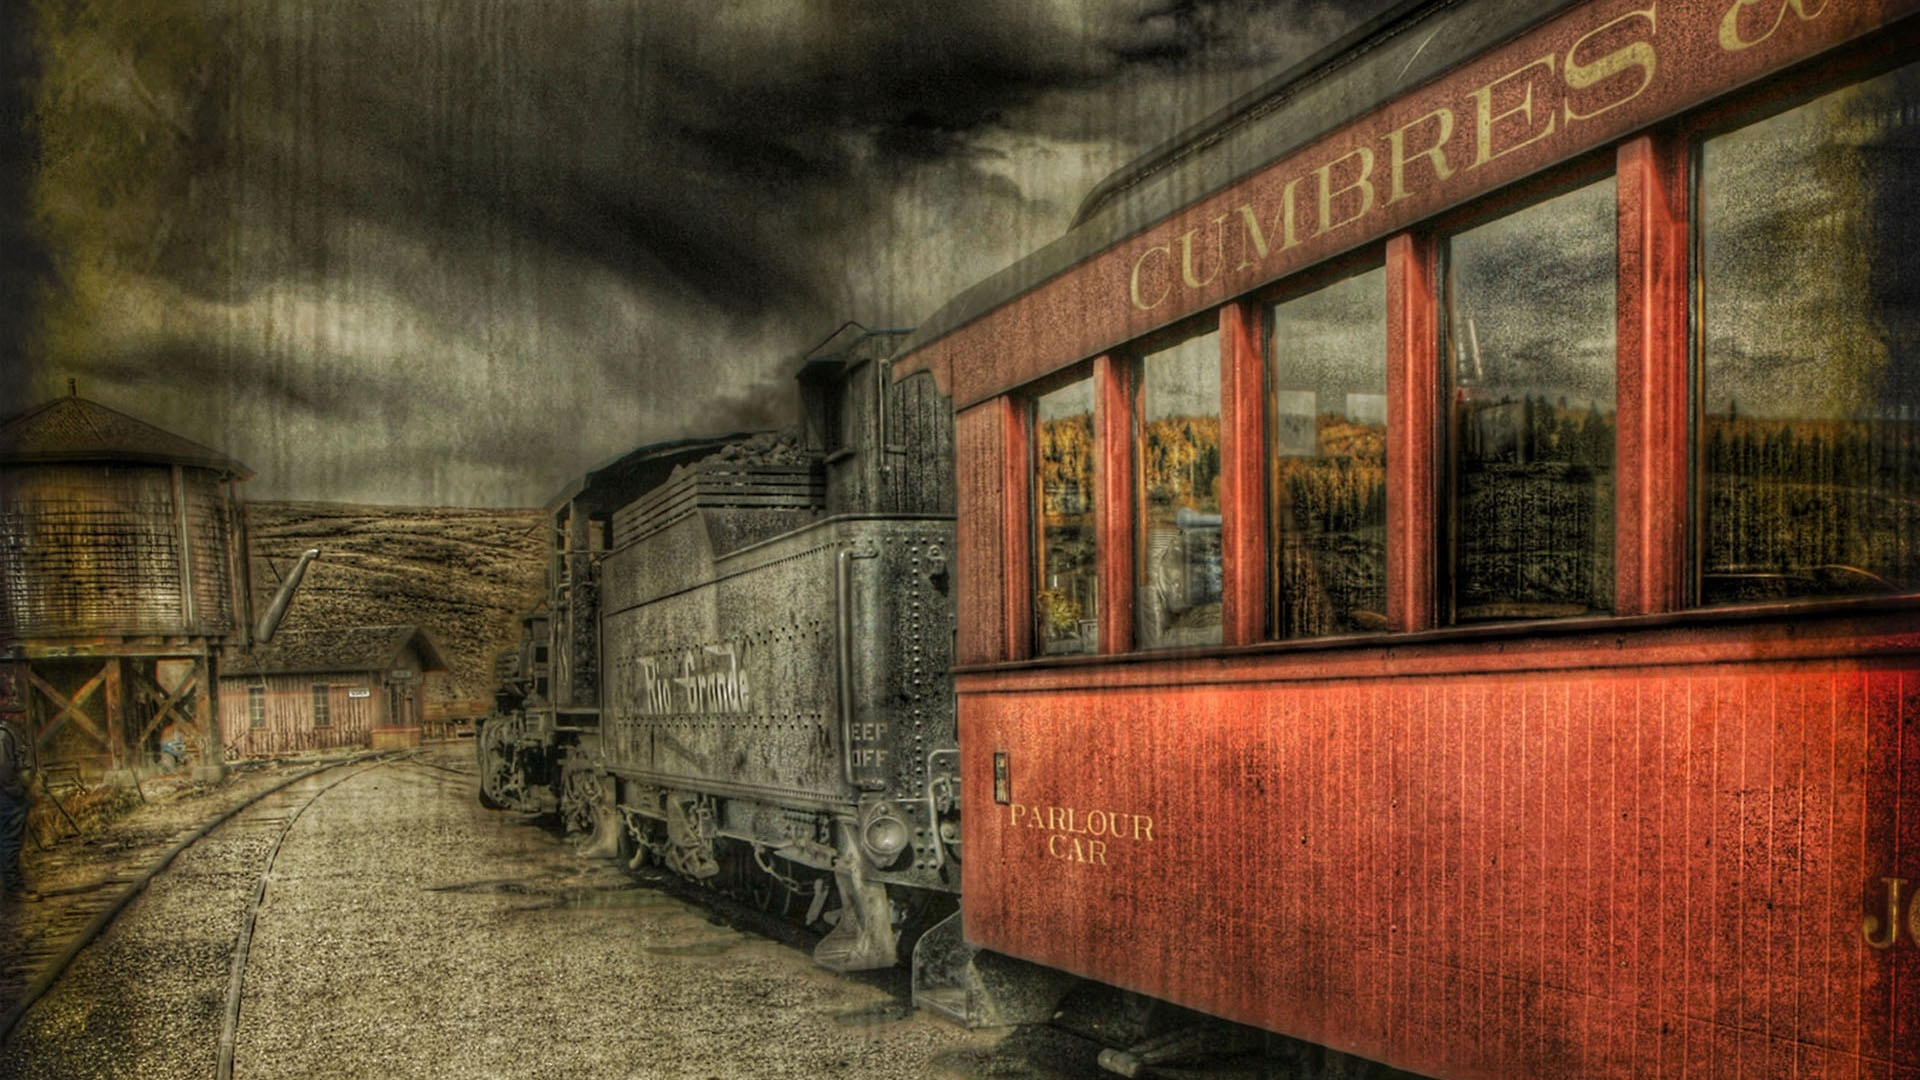 Vintage train wallpaper 5054 1920x1080